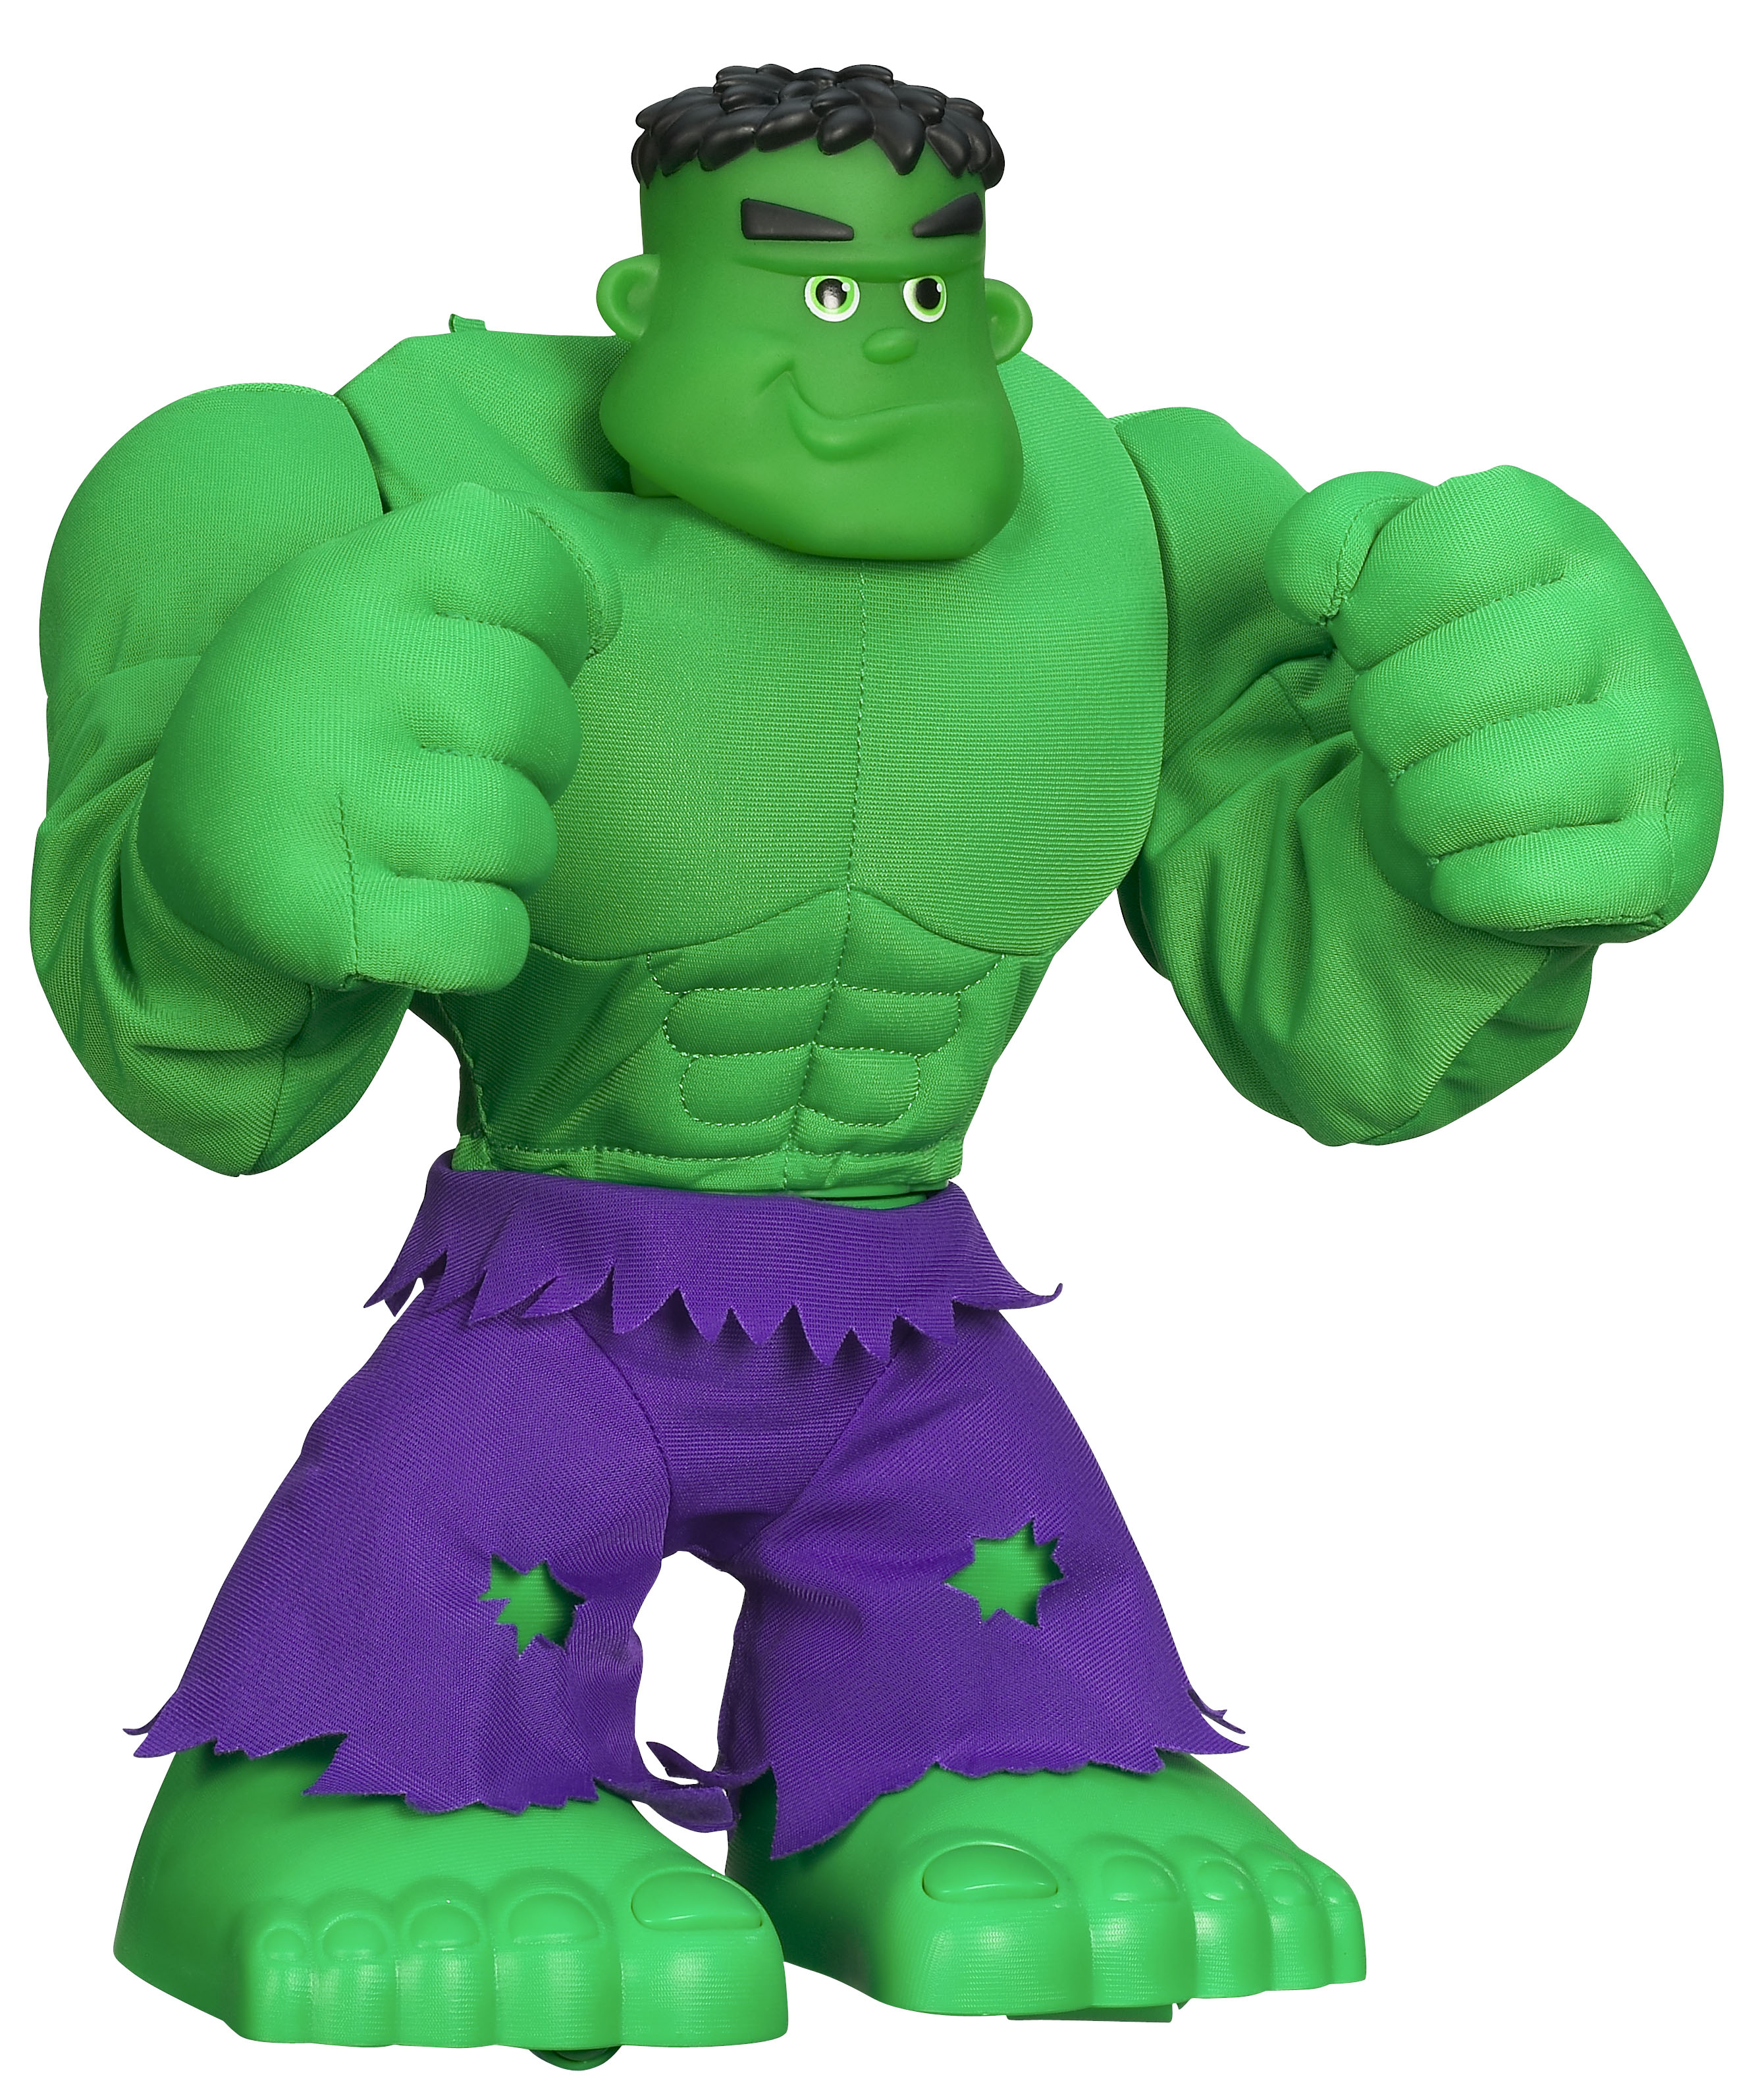 incredible hulk toys - photo #42